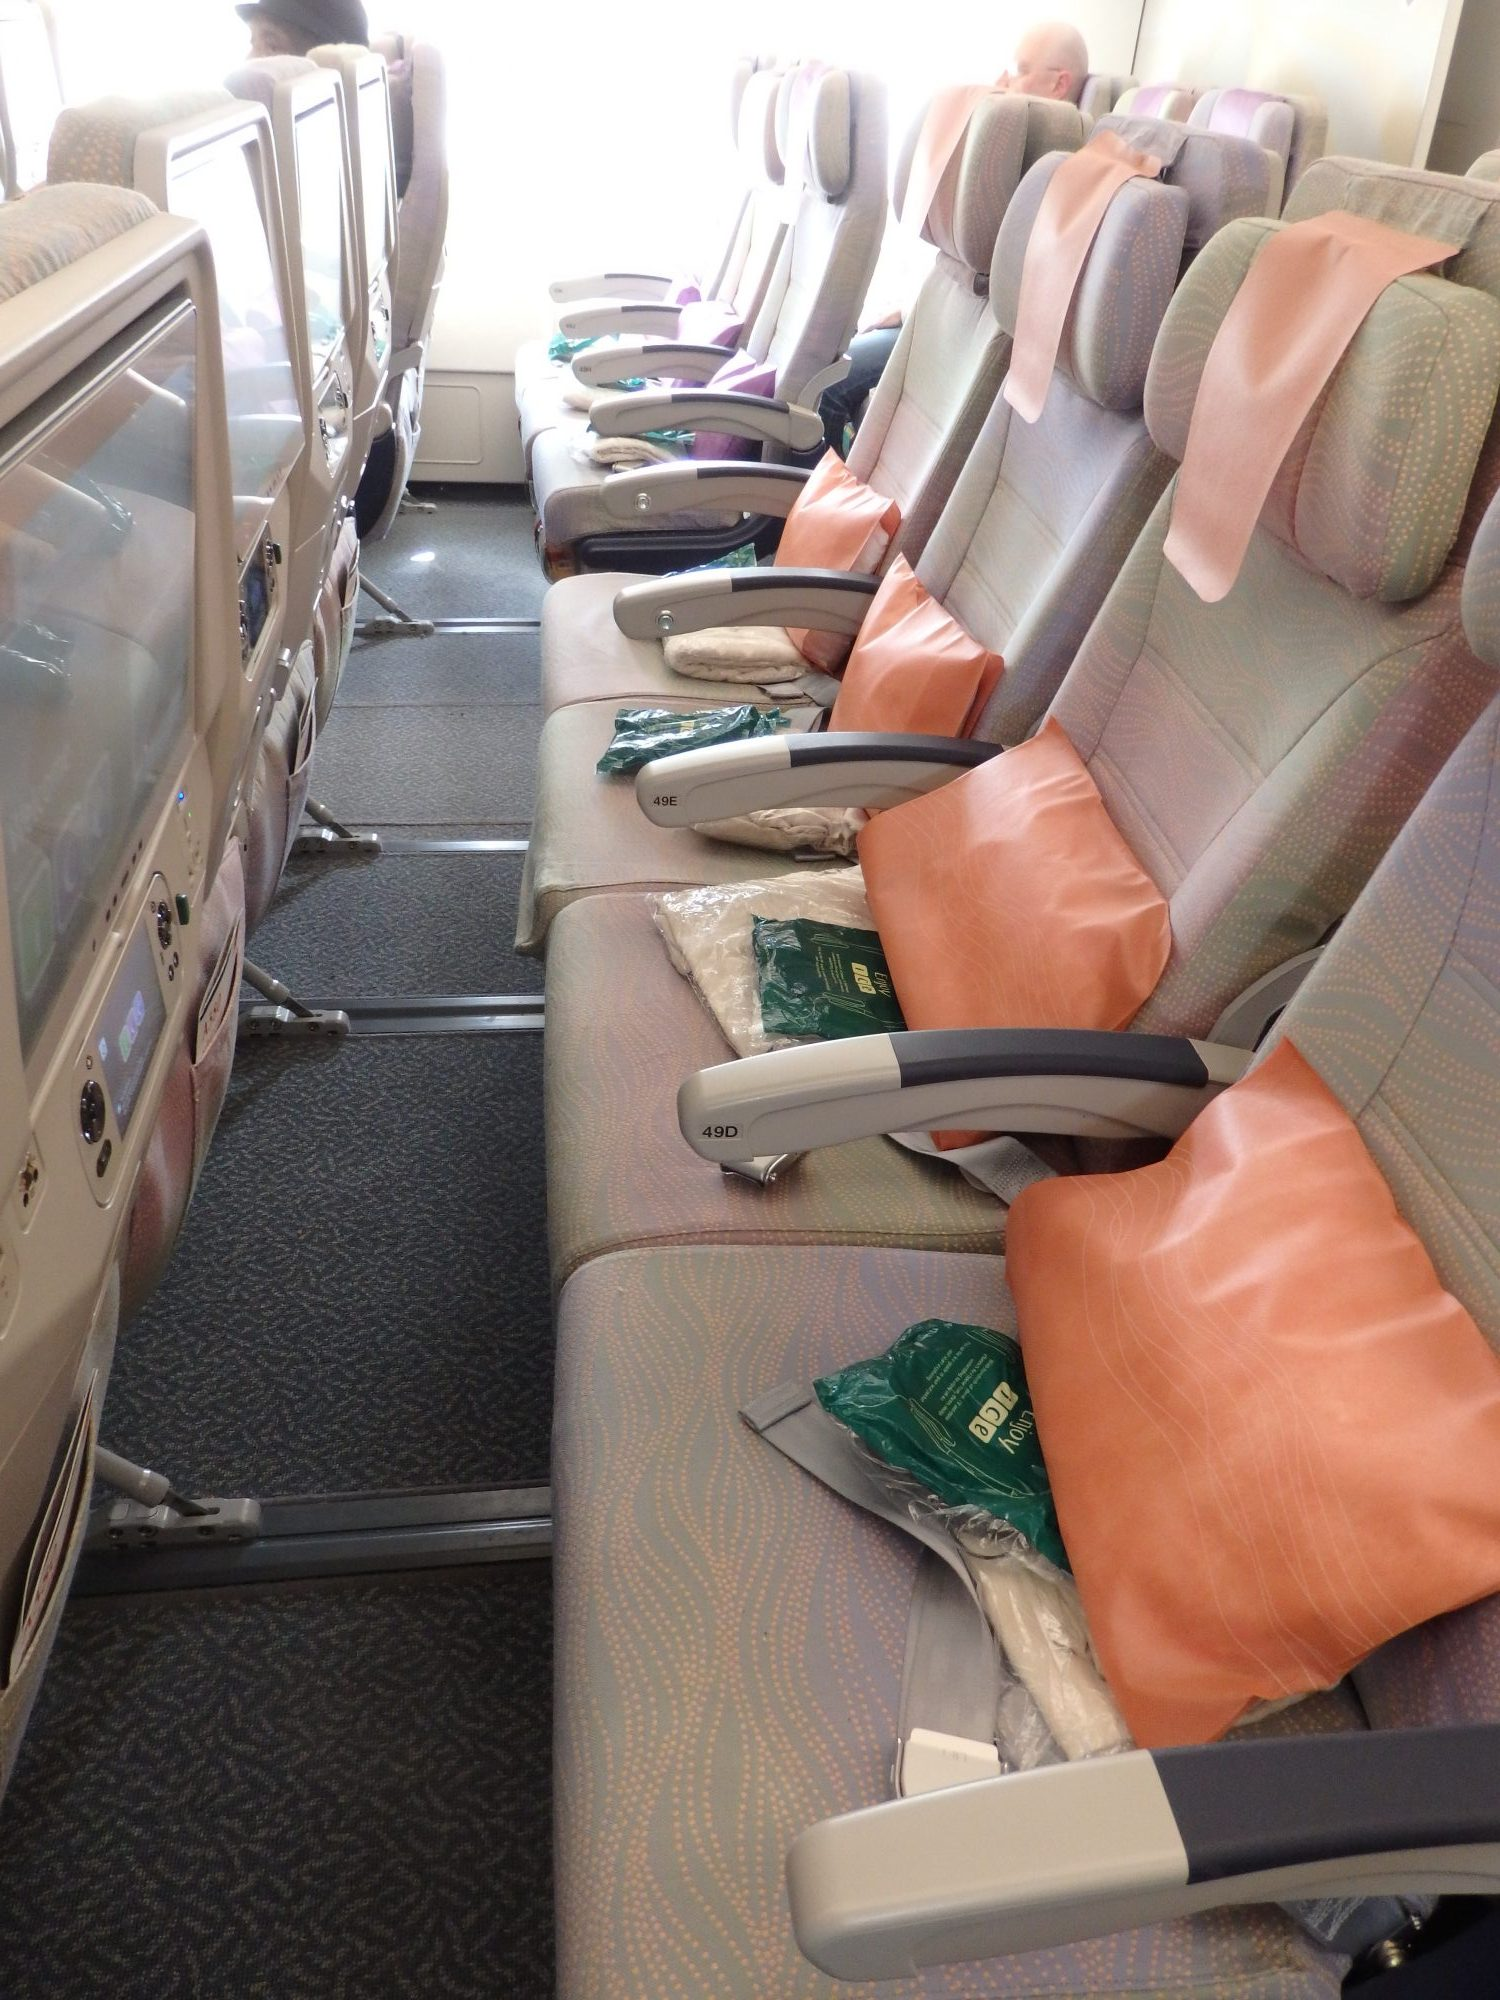 This gives an idea of the seat pitch on the Emirates A380.